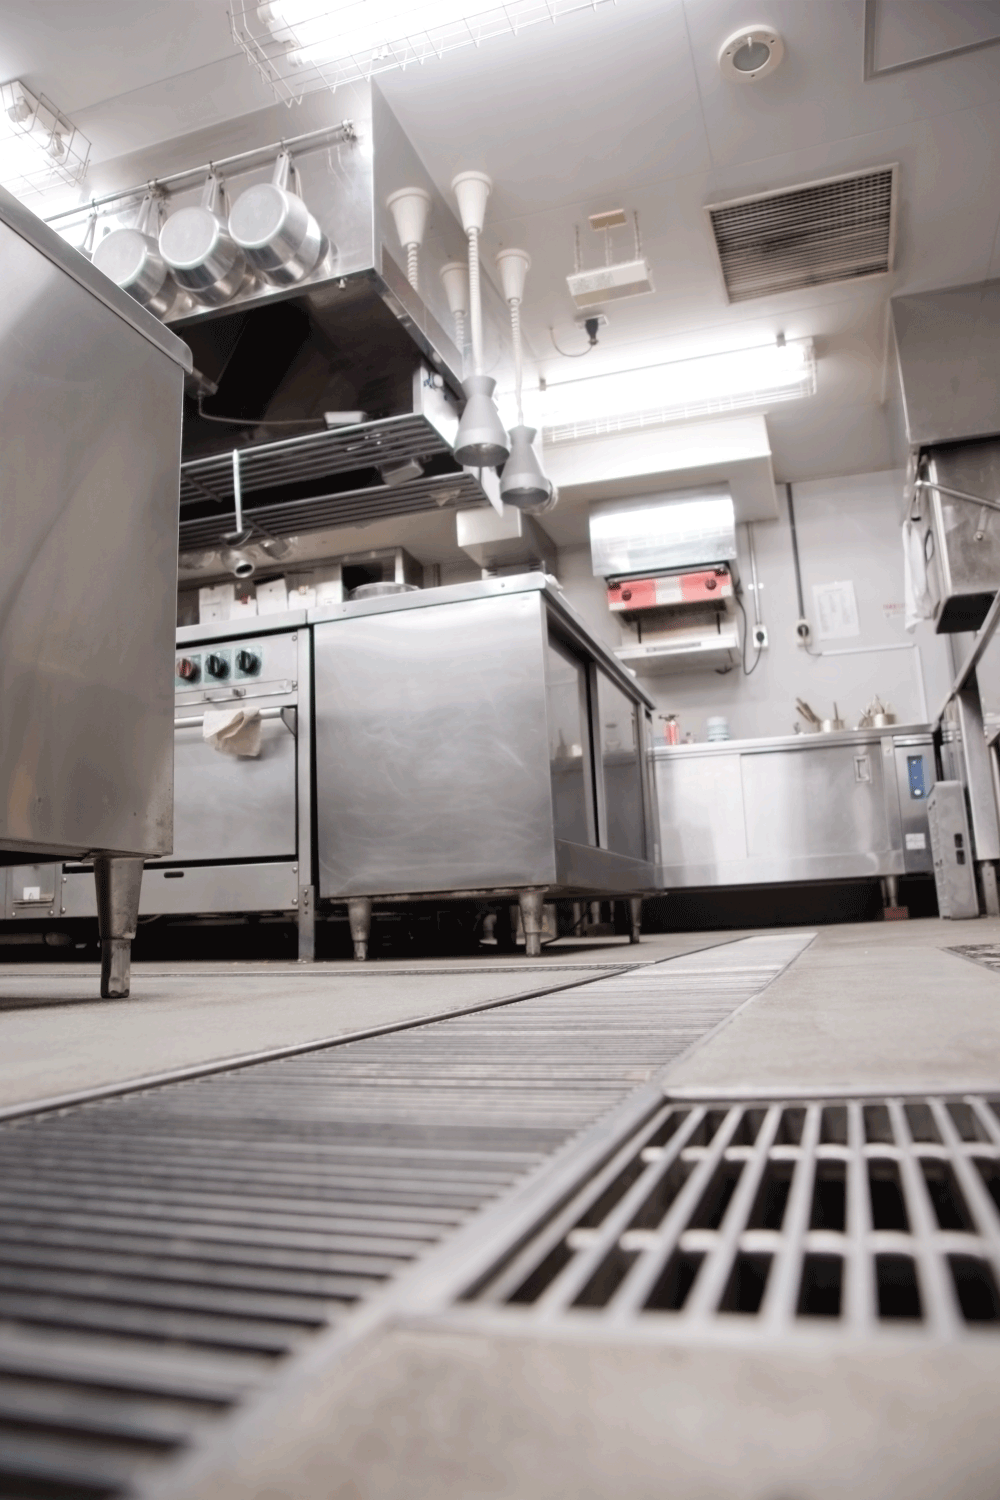 A clean restaurant kitchen before the operation hours, floor sink close up photo